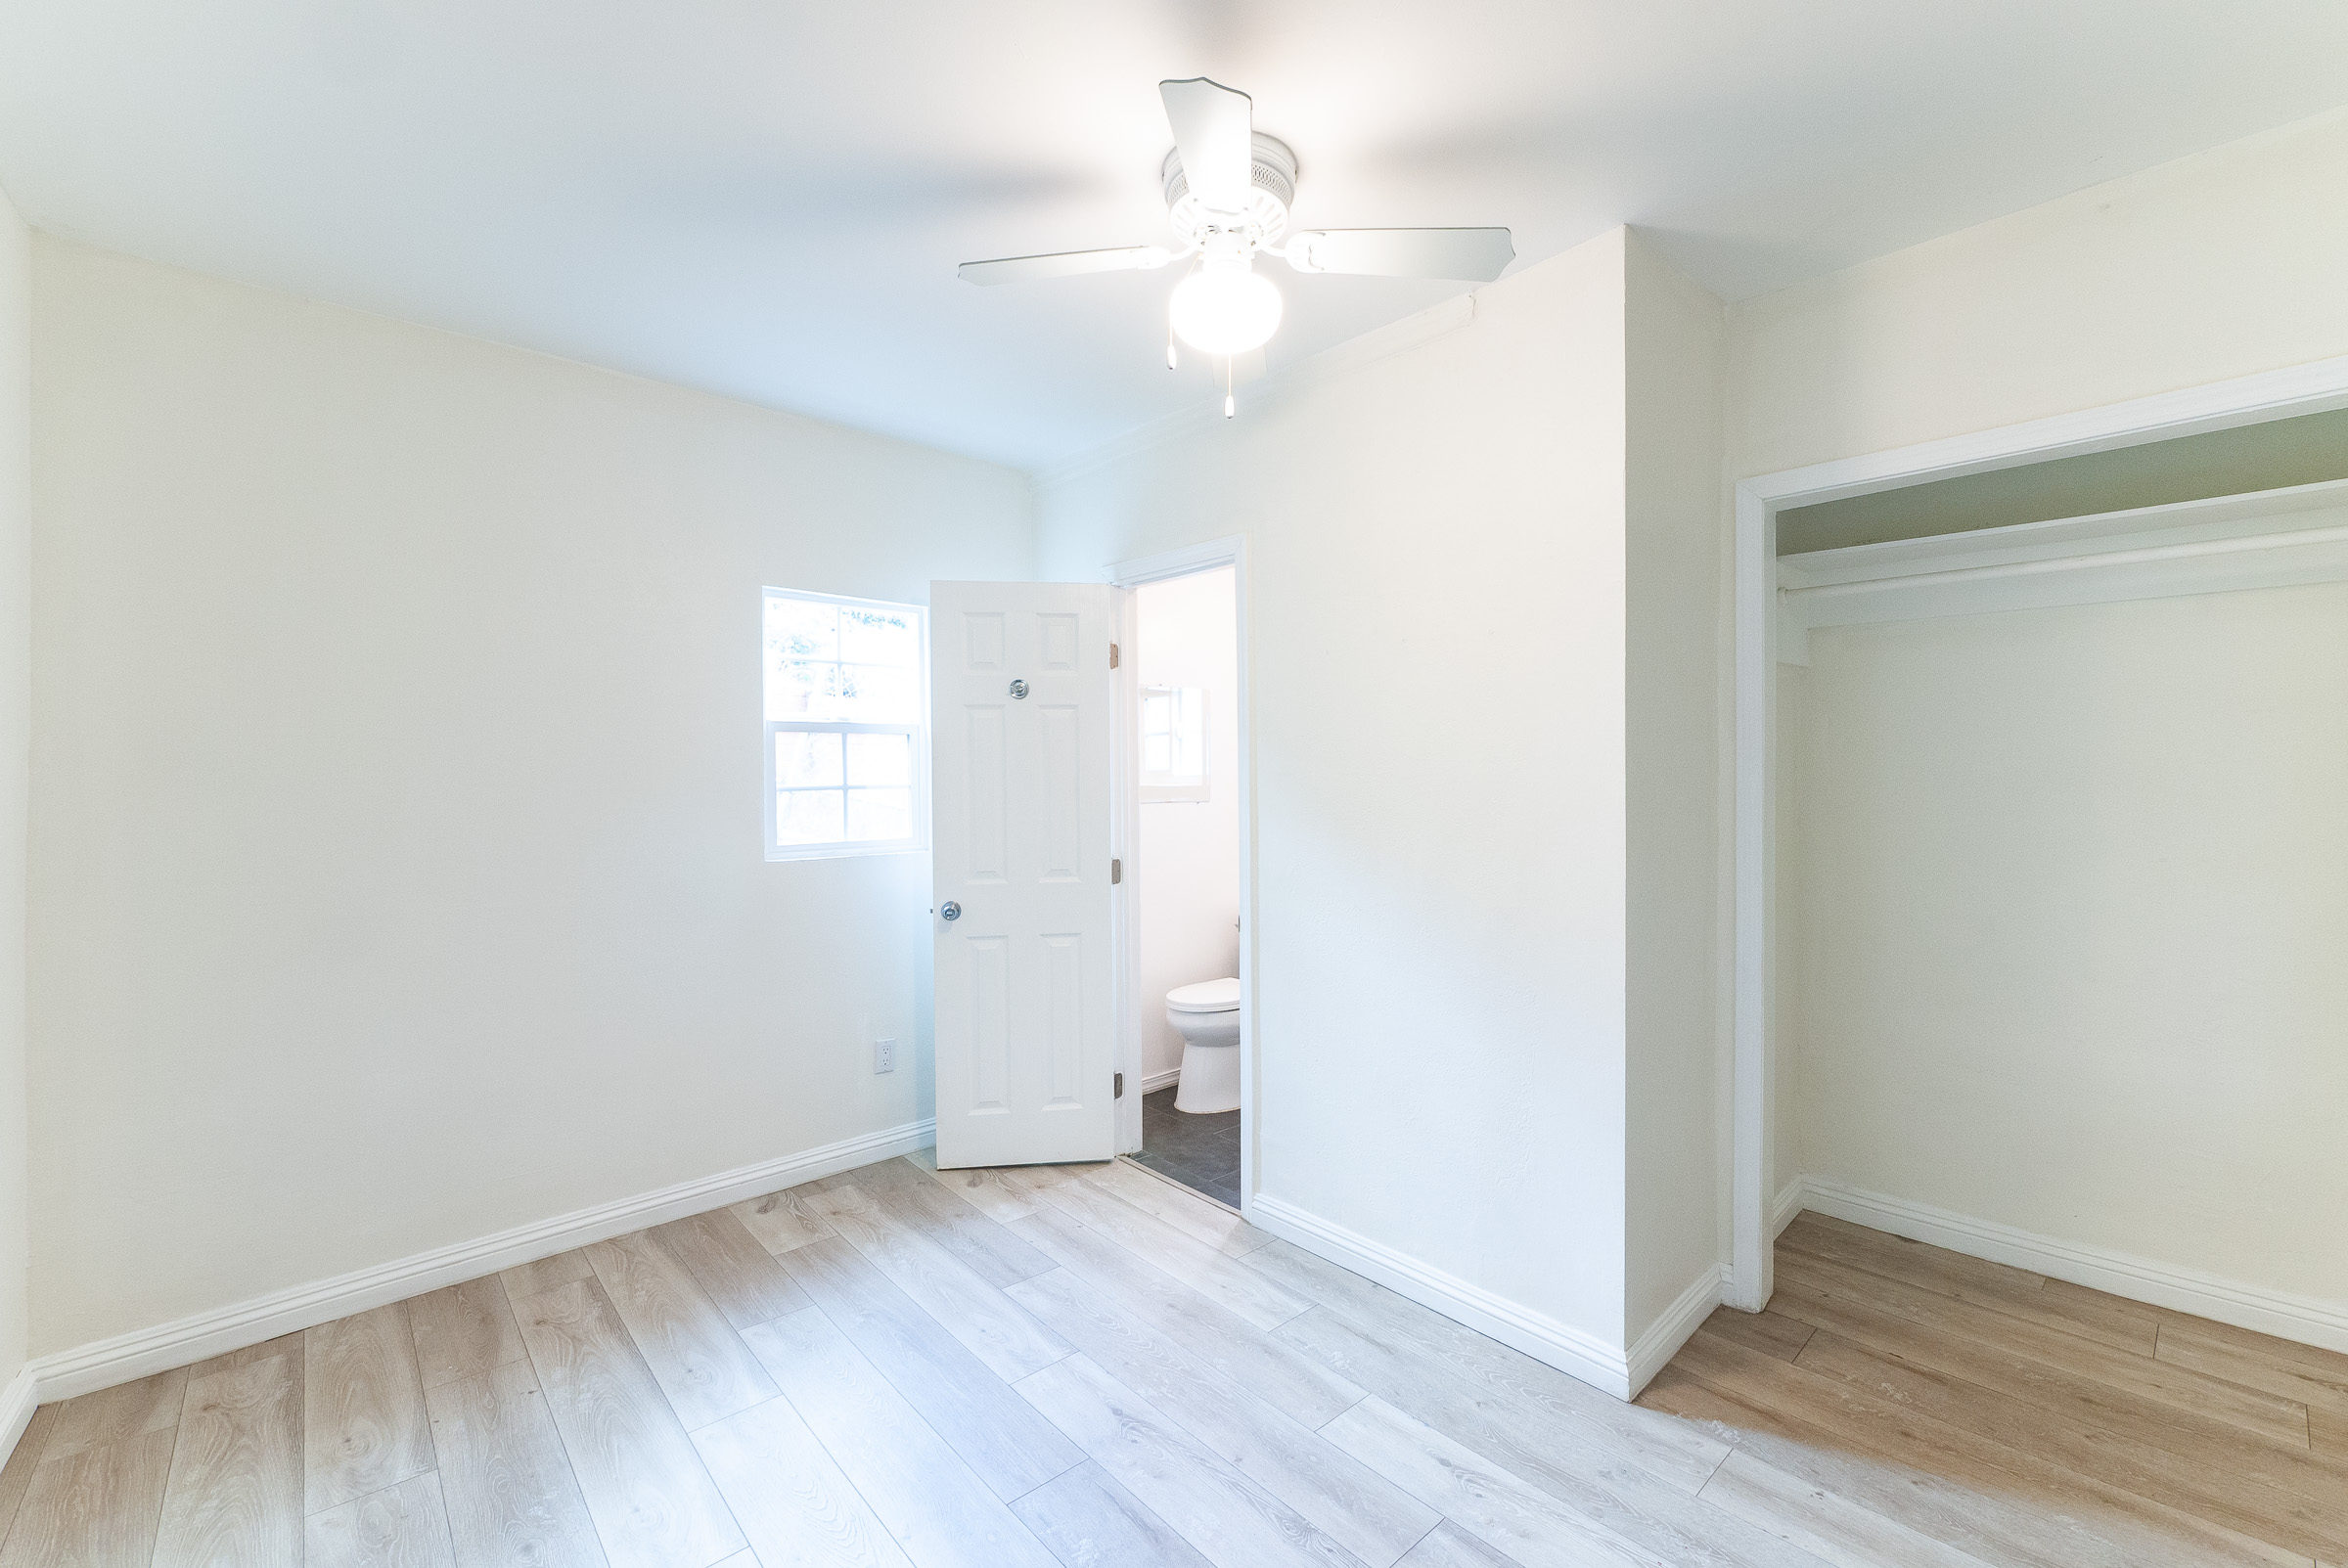 Updated Bachelor Studio In East LA | Pets Wil Be Considered | Street Parking Only